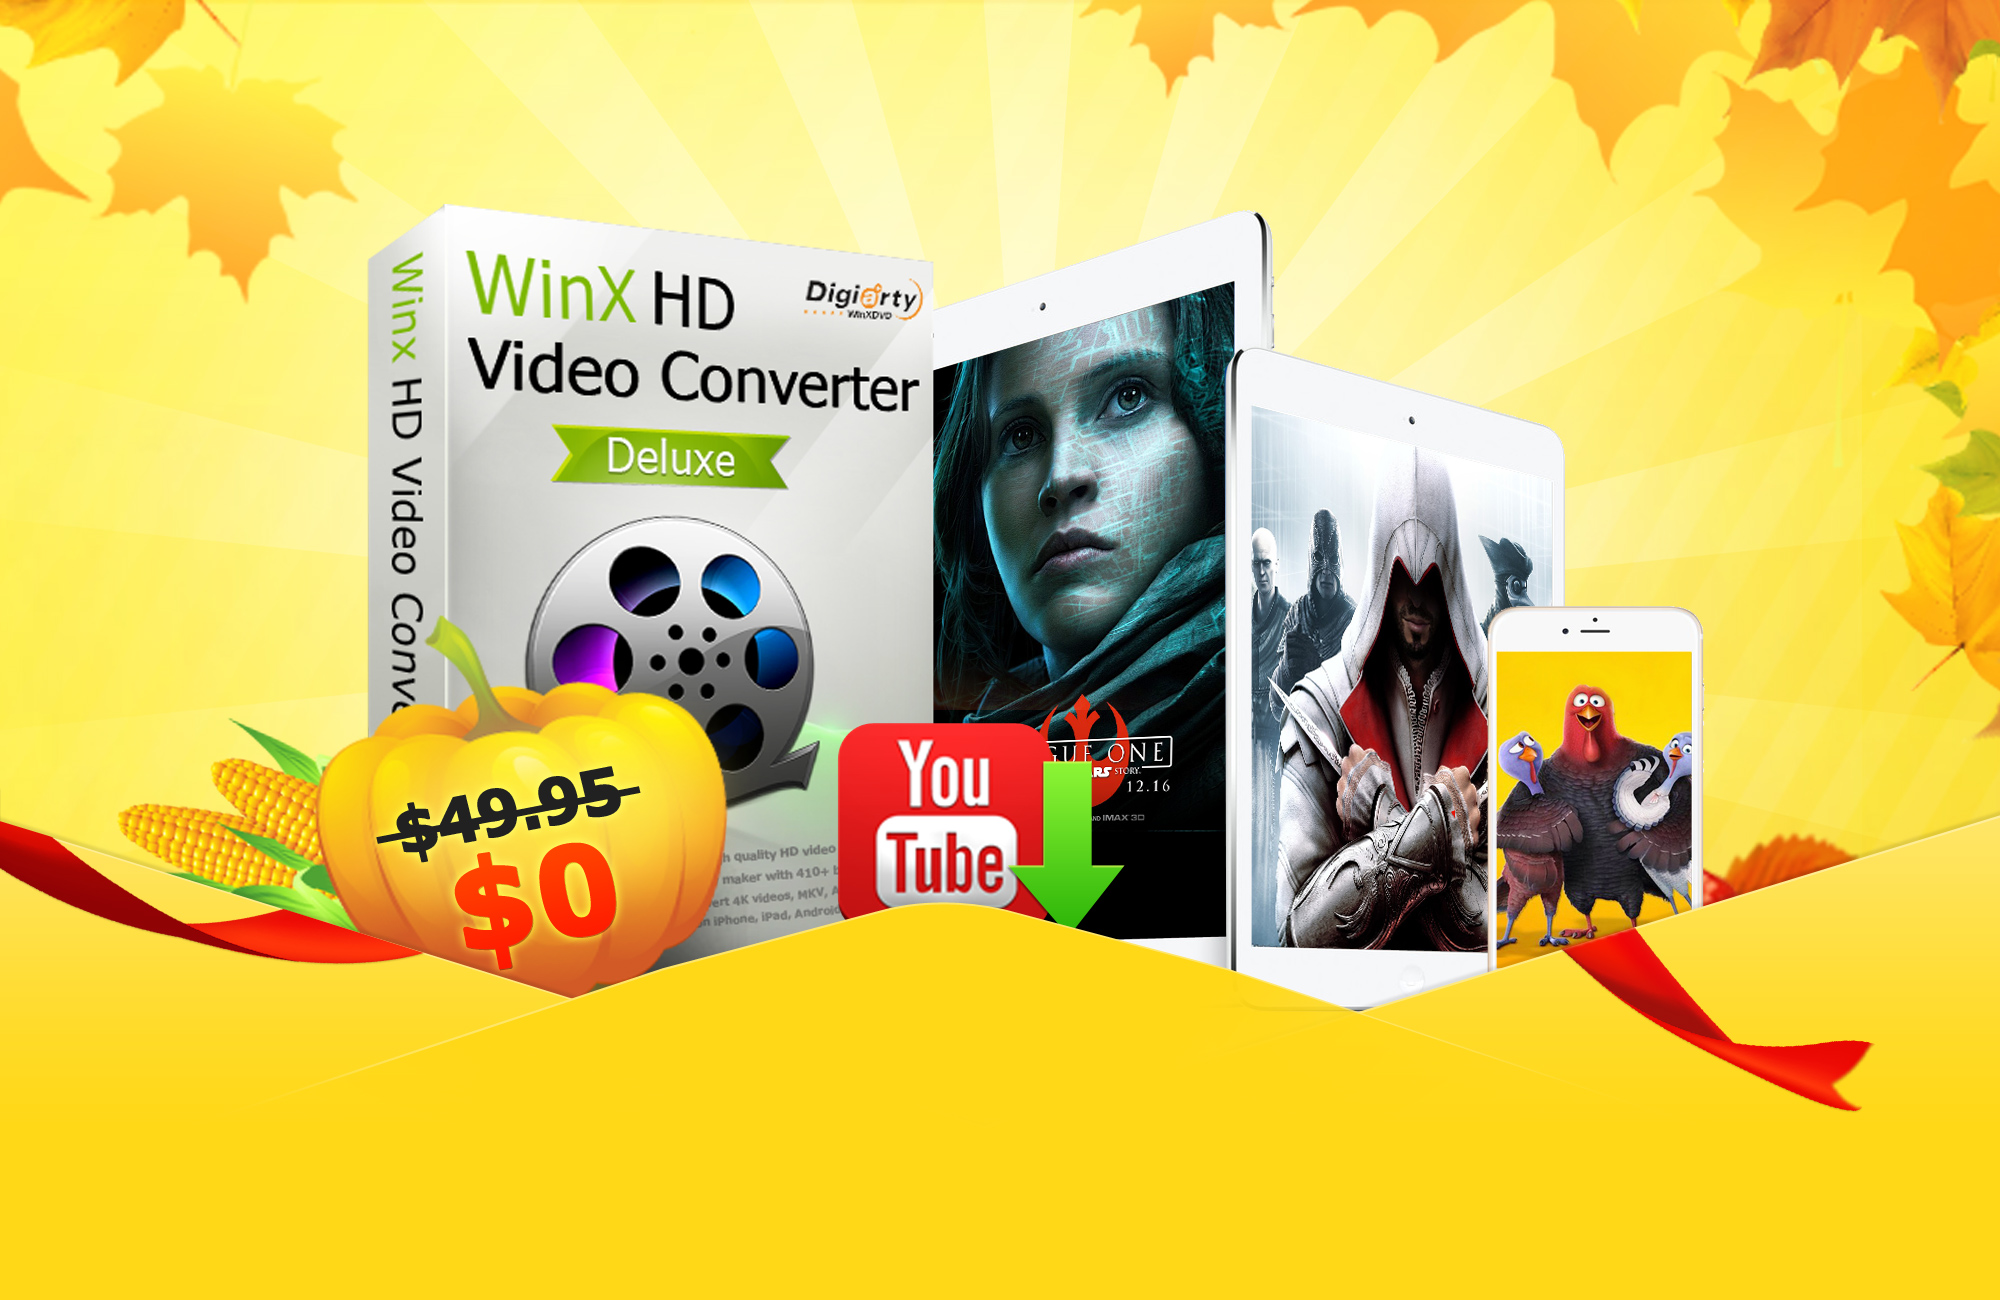 2000x1300 - Convertire qualsiasi video con WinX HD Video Converter Deluxe